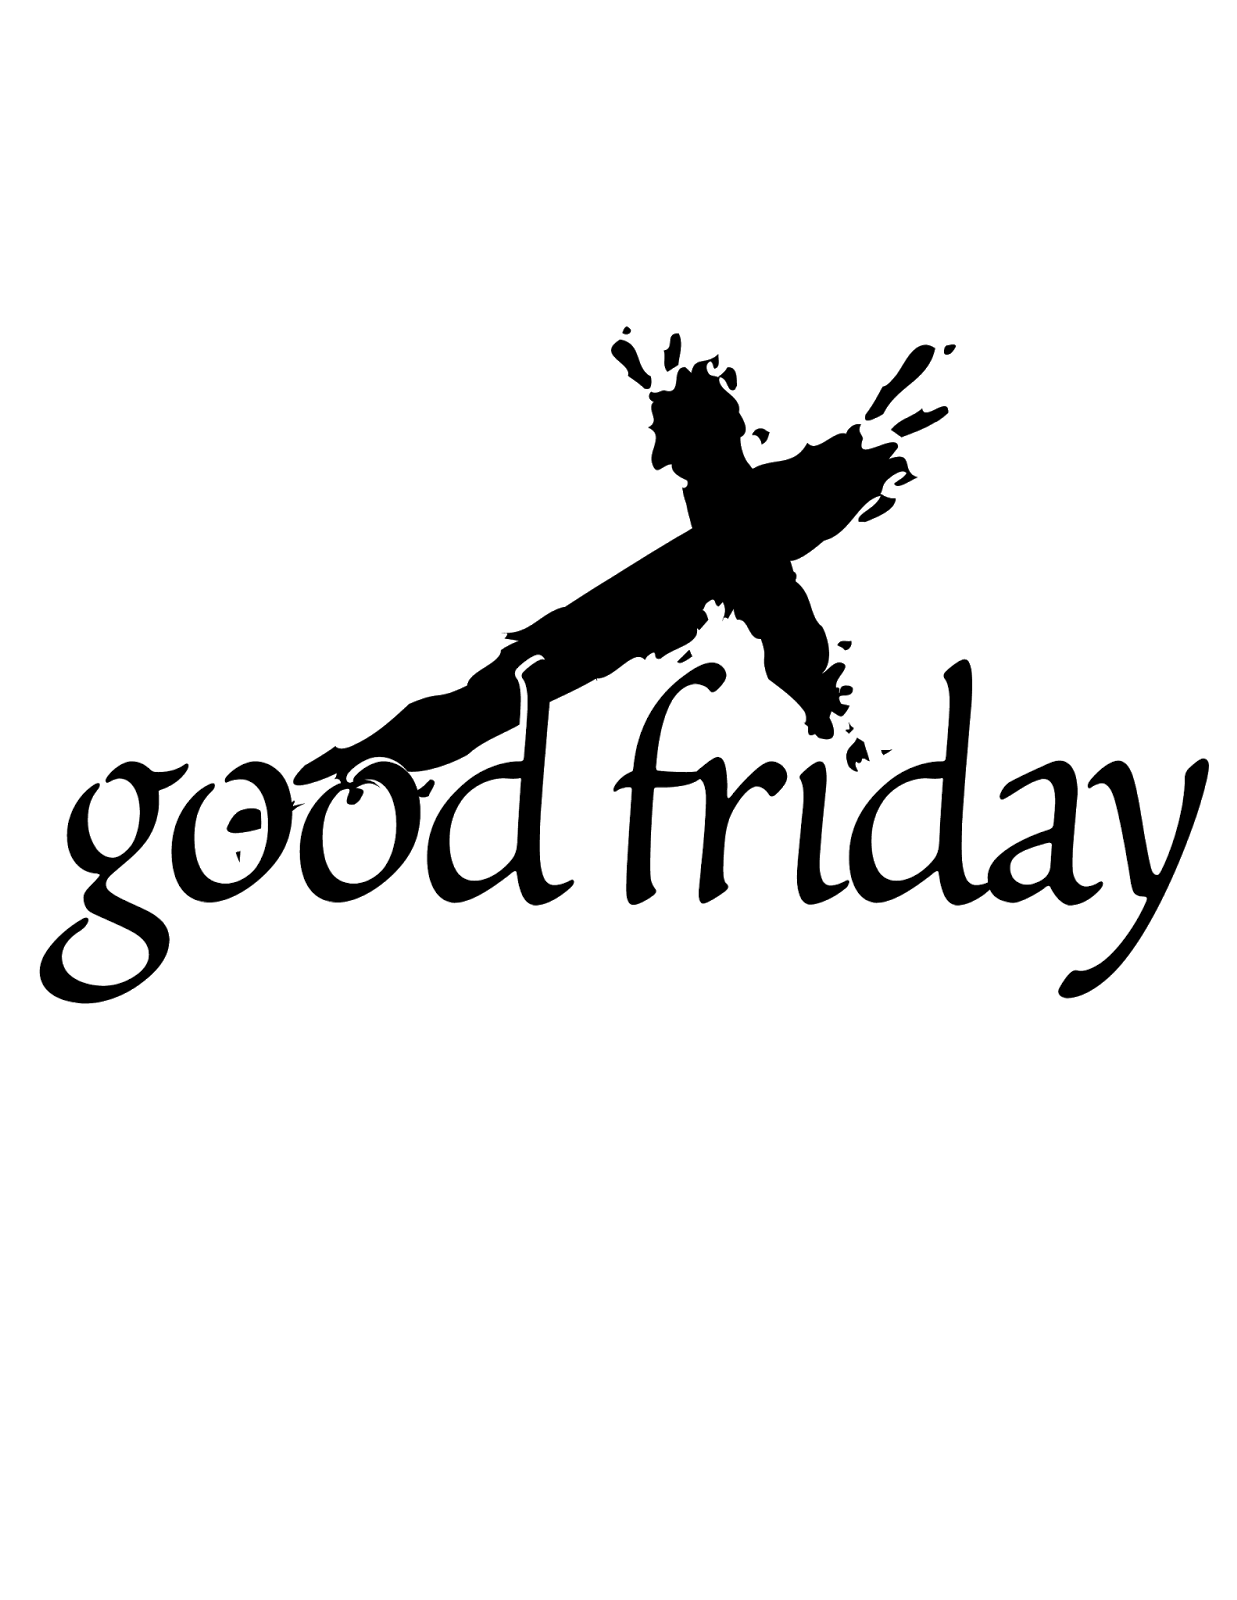 good friday clipart beautiful clipart of good friday 2018 rh wishyouhappyday com good friday clipart religious good friday clipart 2018